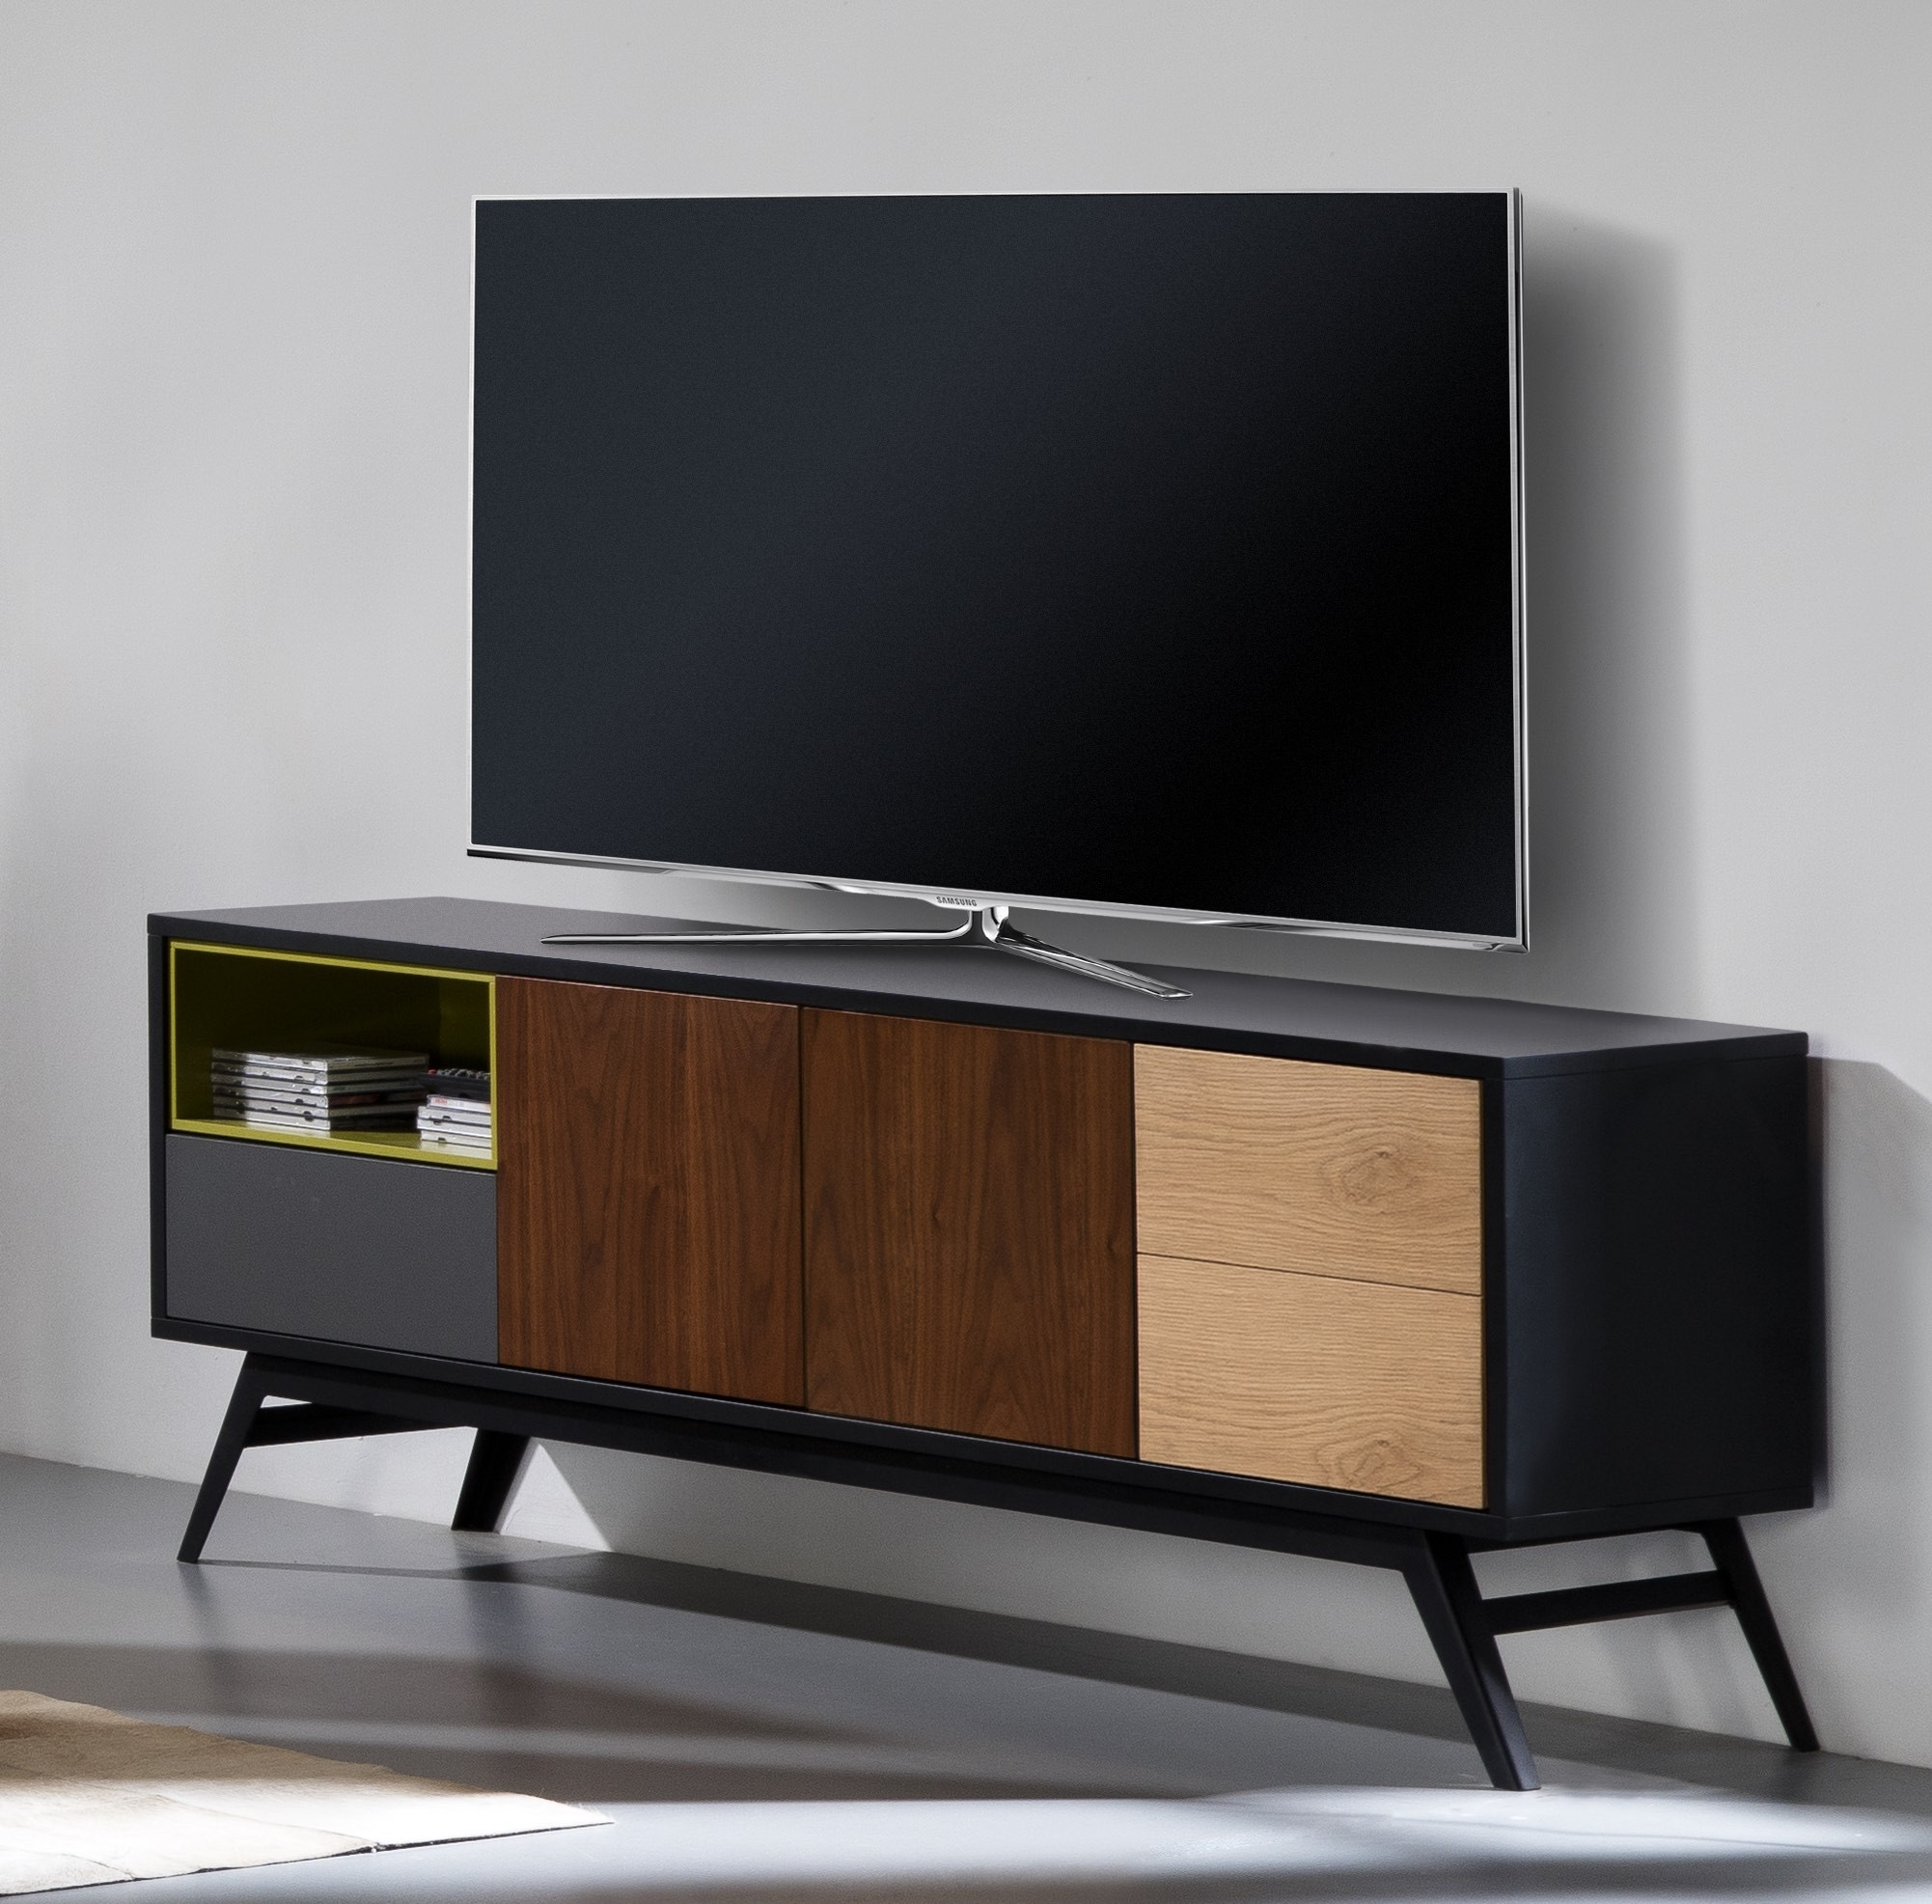 tv escamotable perfect meuble television escamotable meuble tv escamotable pas cher meuble tl. Black Bedroom Furniture Sets. Home Design Ideas